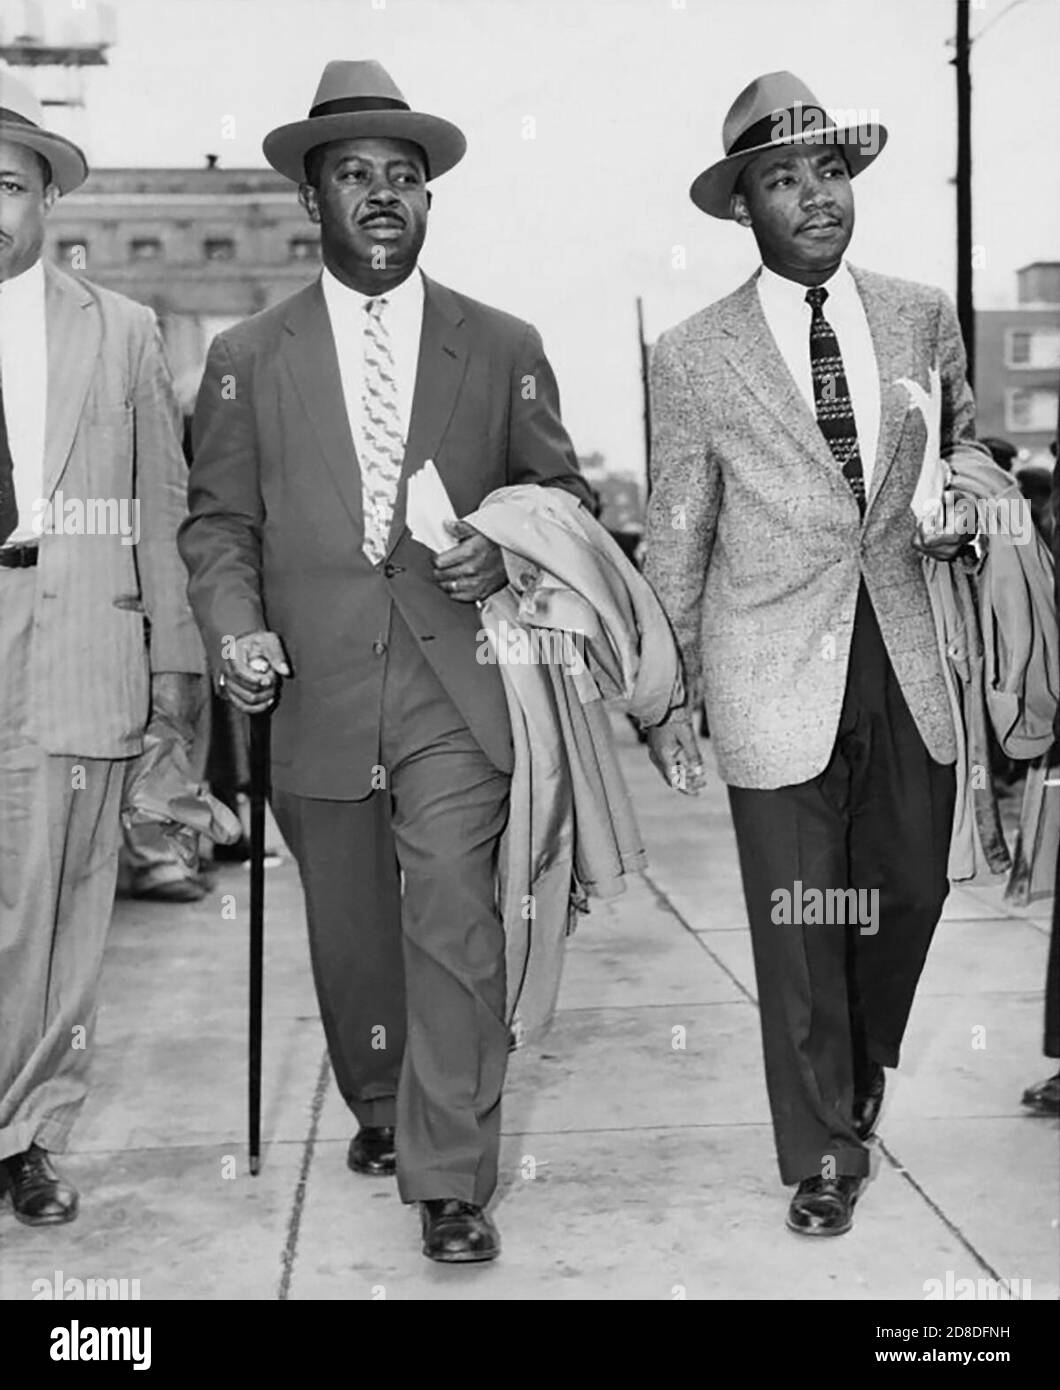 Ralph David Abernathy, Sr. and Martin Luther King, Jr., leaving the County Courthouse in Montgomery, Alabama, 1956. (USA) Stock Photo